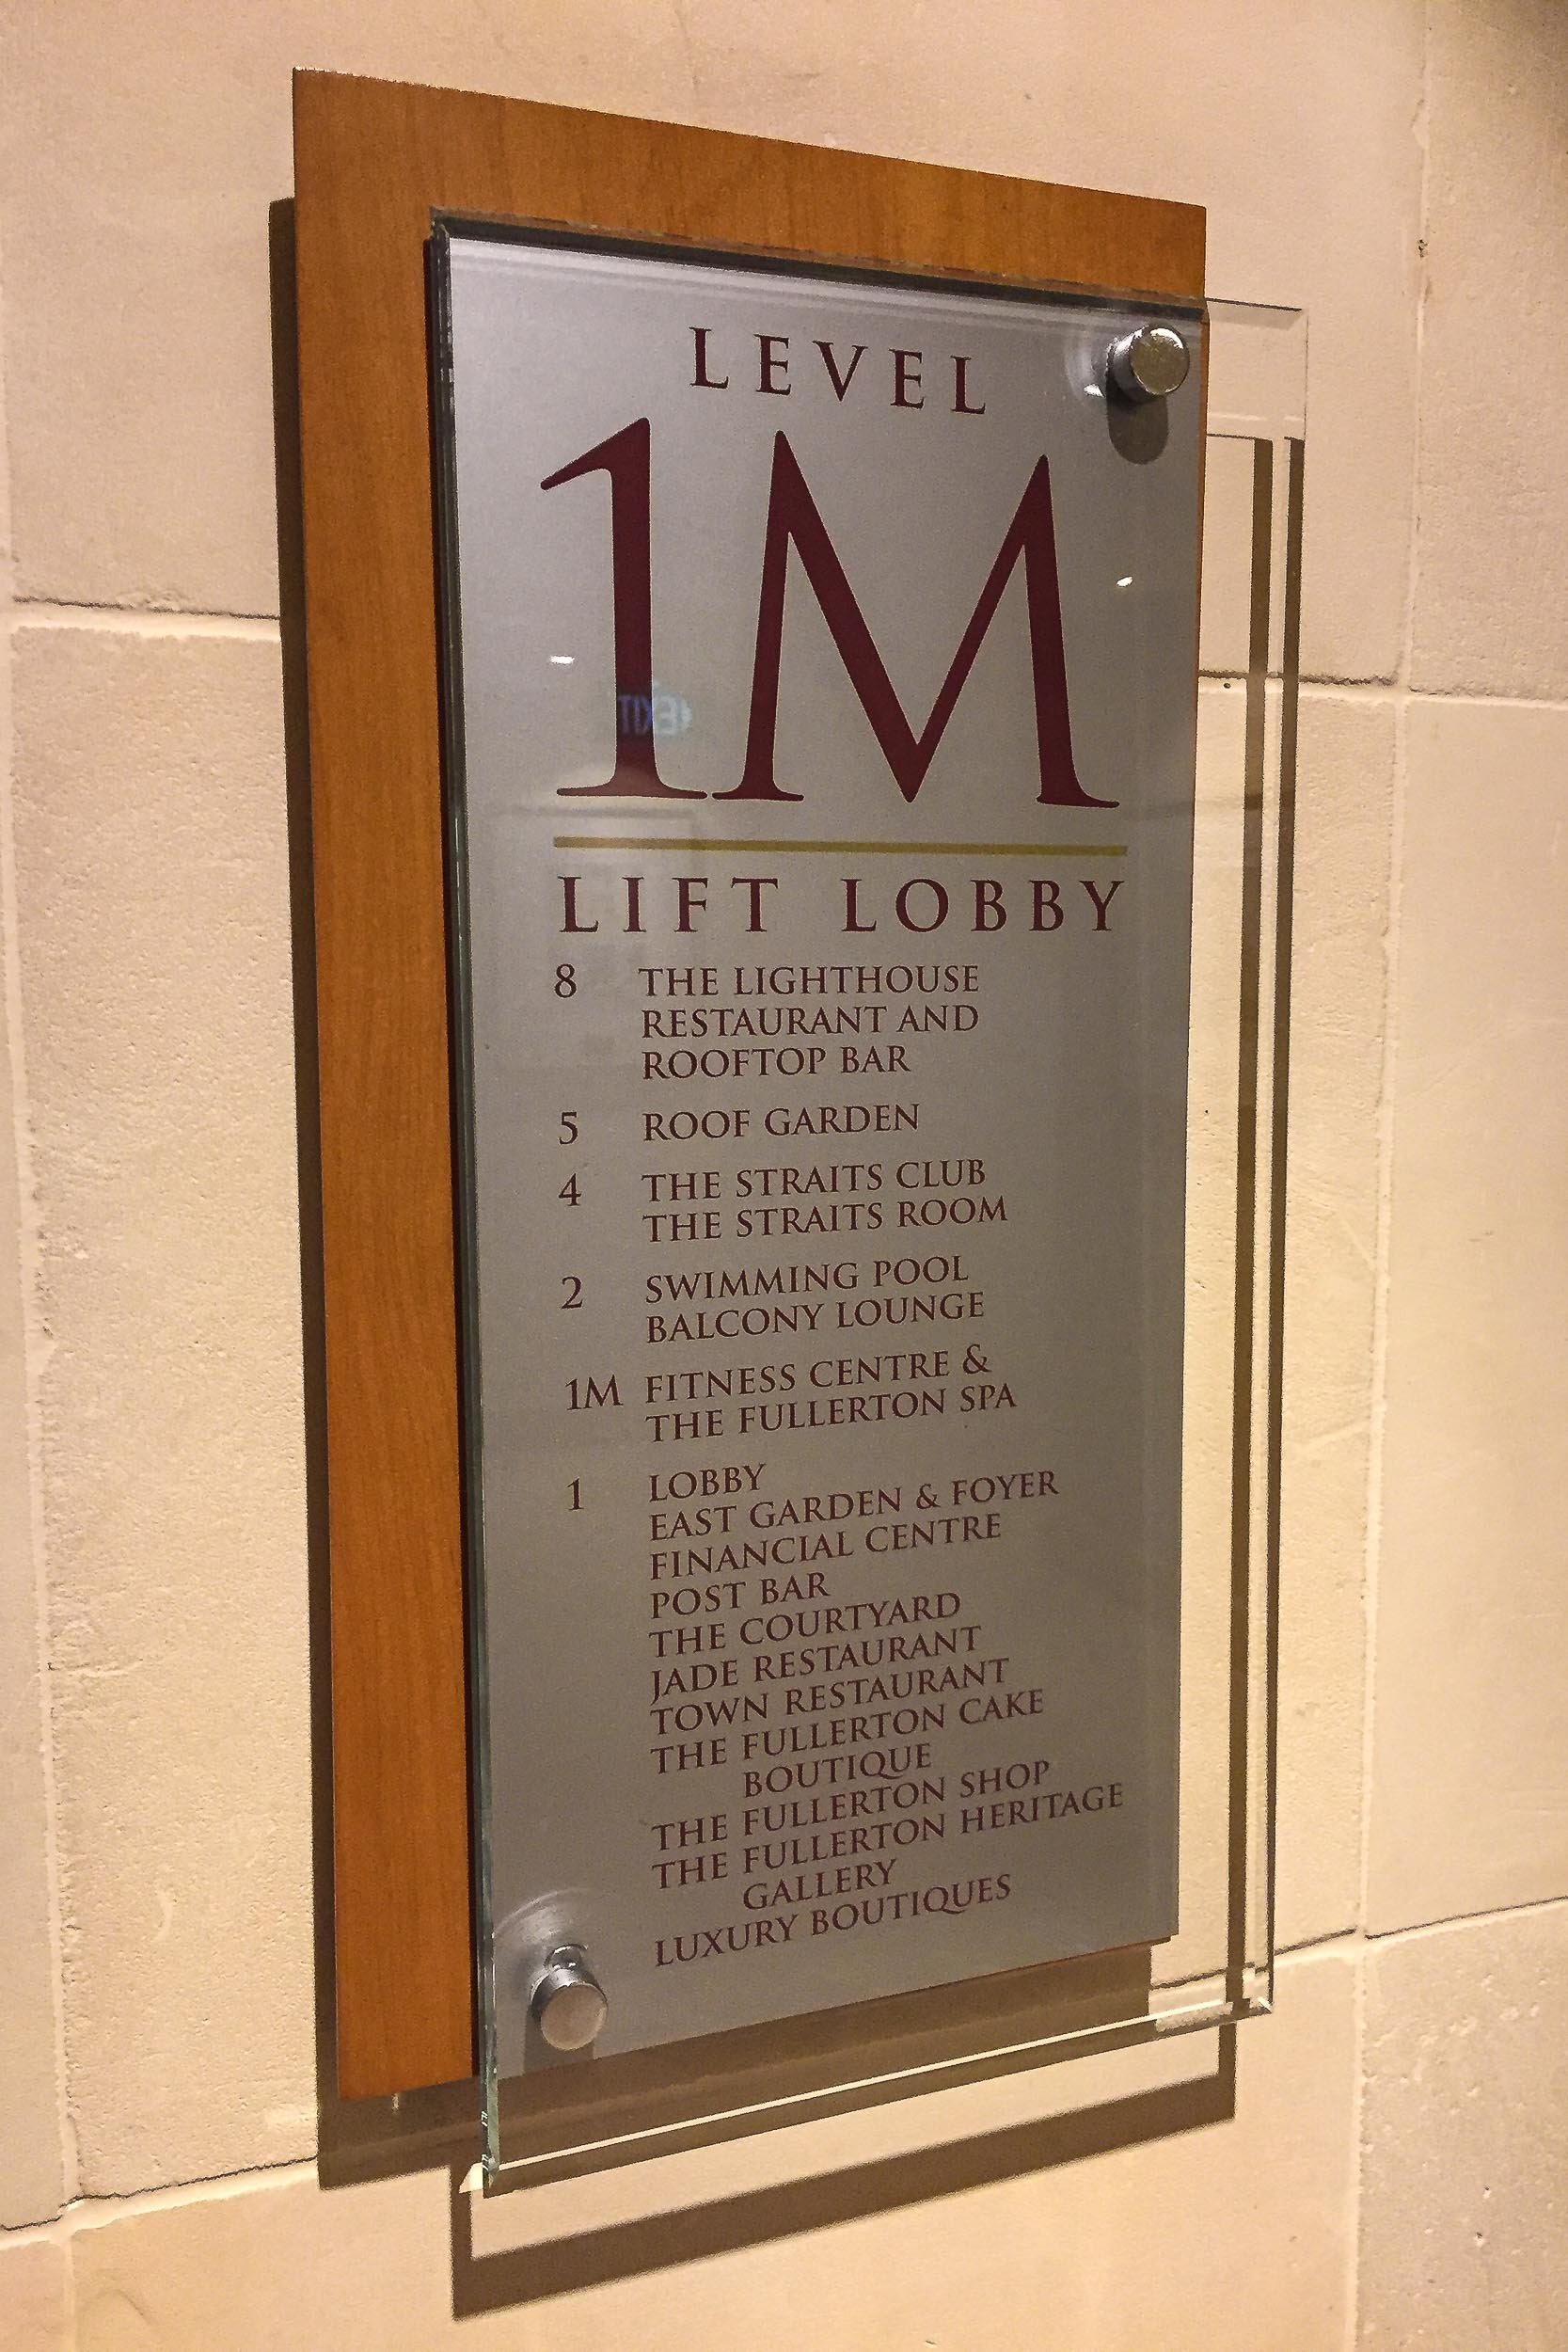 The Spa is on Level 1M of the Fullerton Hotel (not the Fullerton Bay Hotel)